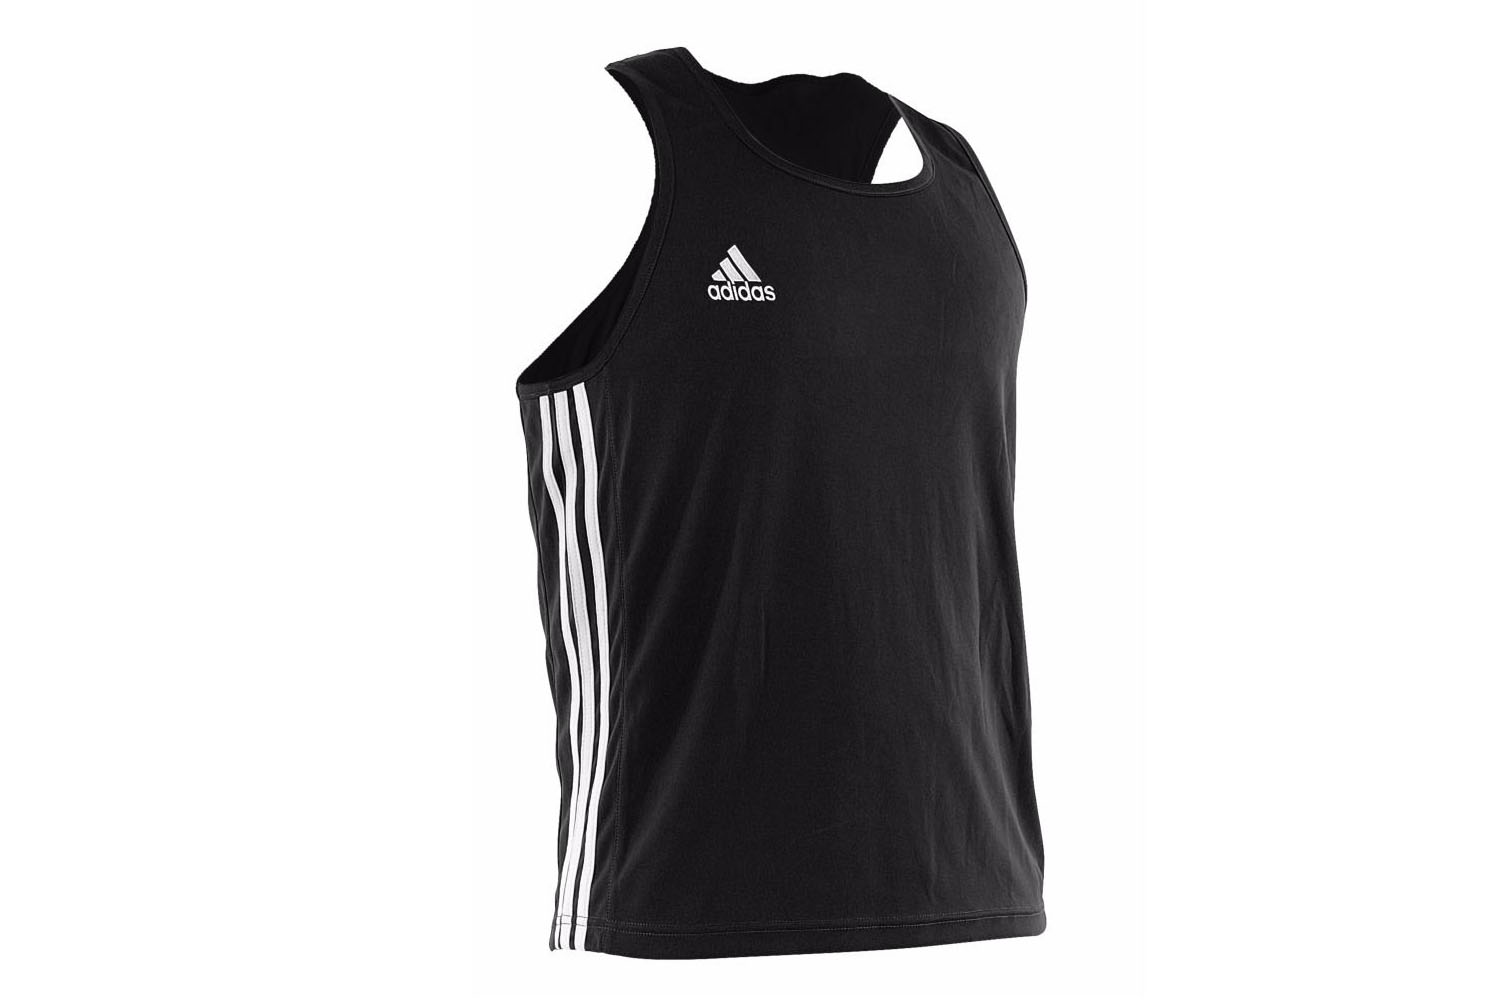 100% top quality look out for huge sale Tank Top, English Boxing - ADIBTT02, Adidas - DragonSports.eu